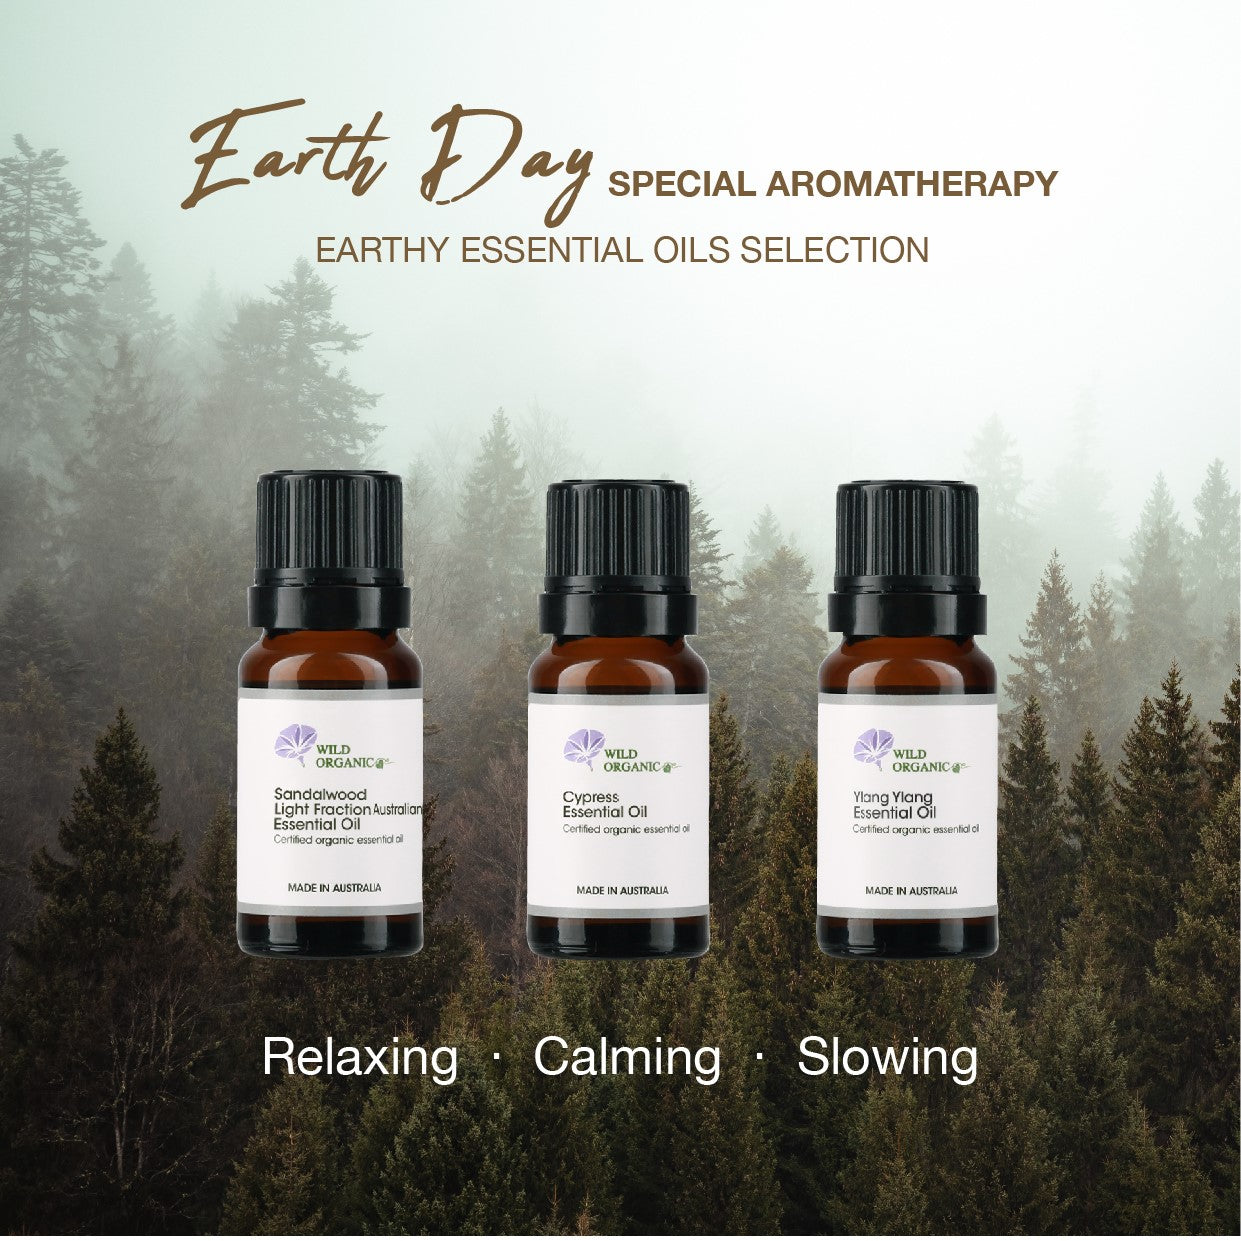 Organic Essential Oil (Earthy) - Buy 2 get 12% off